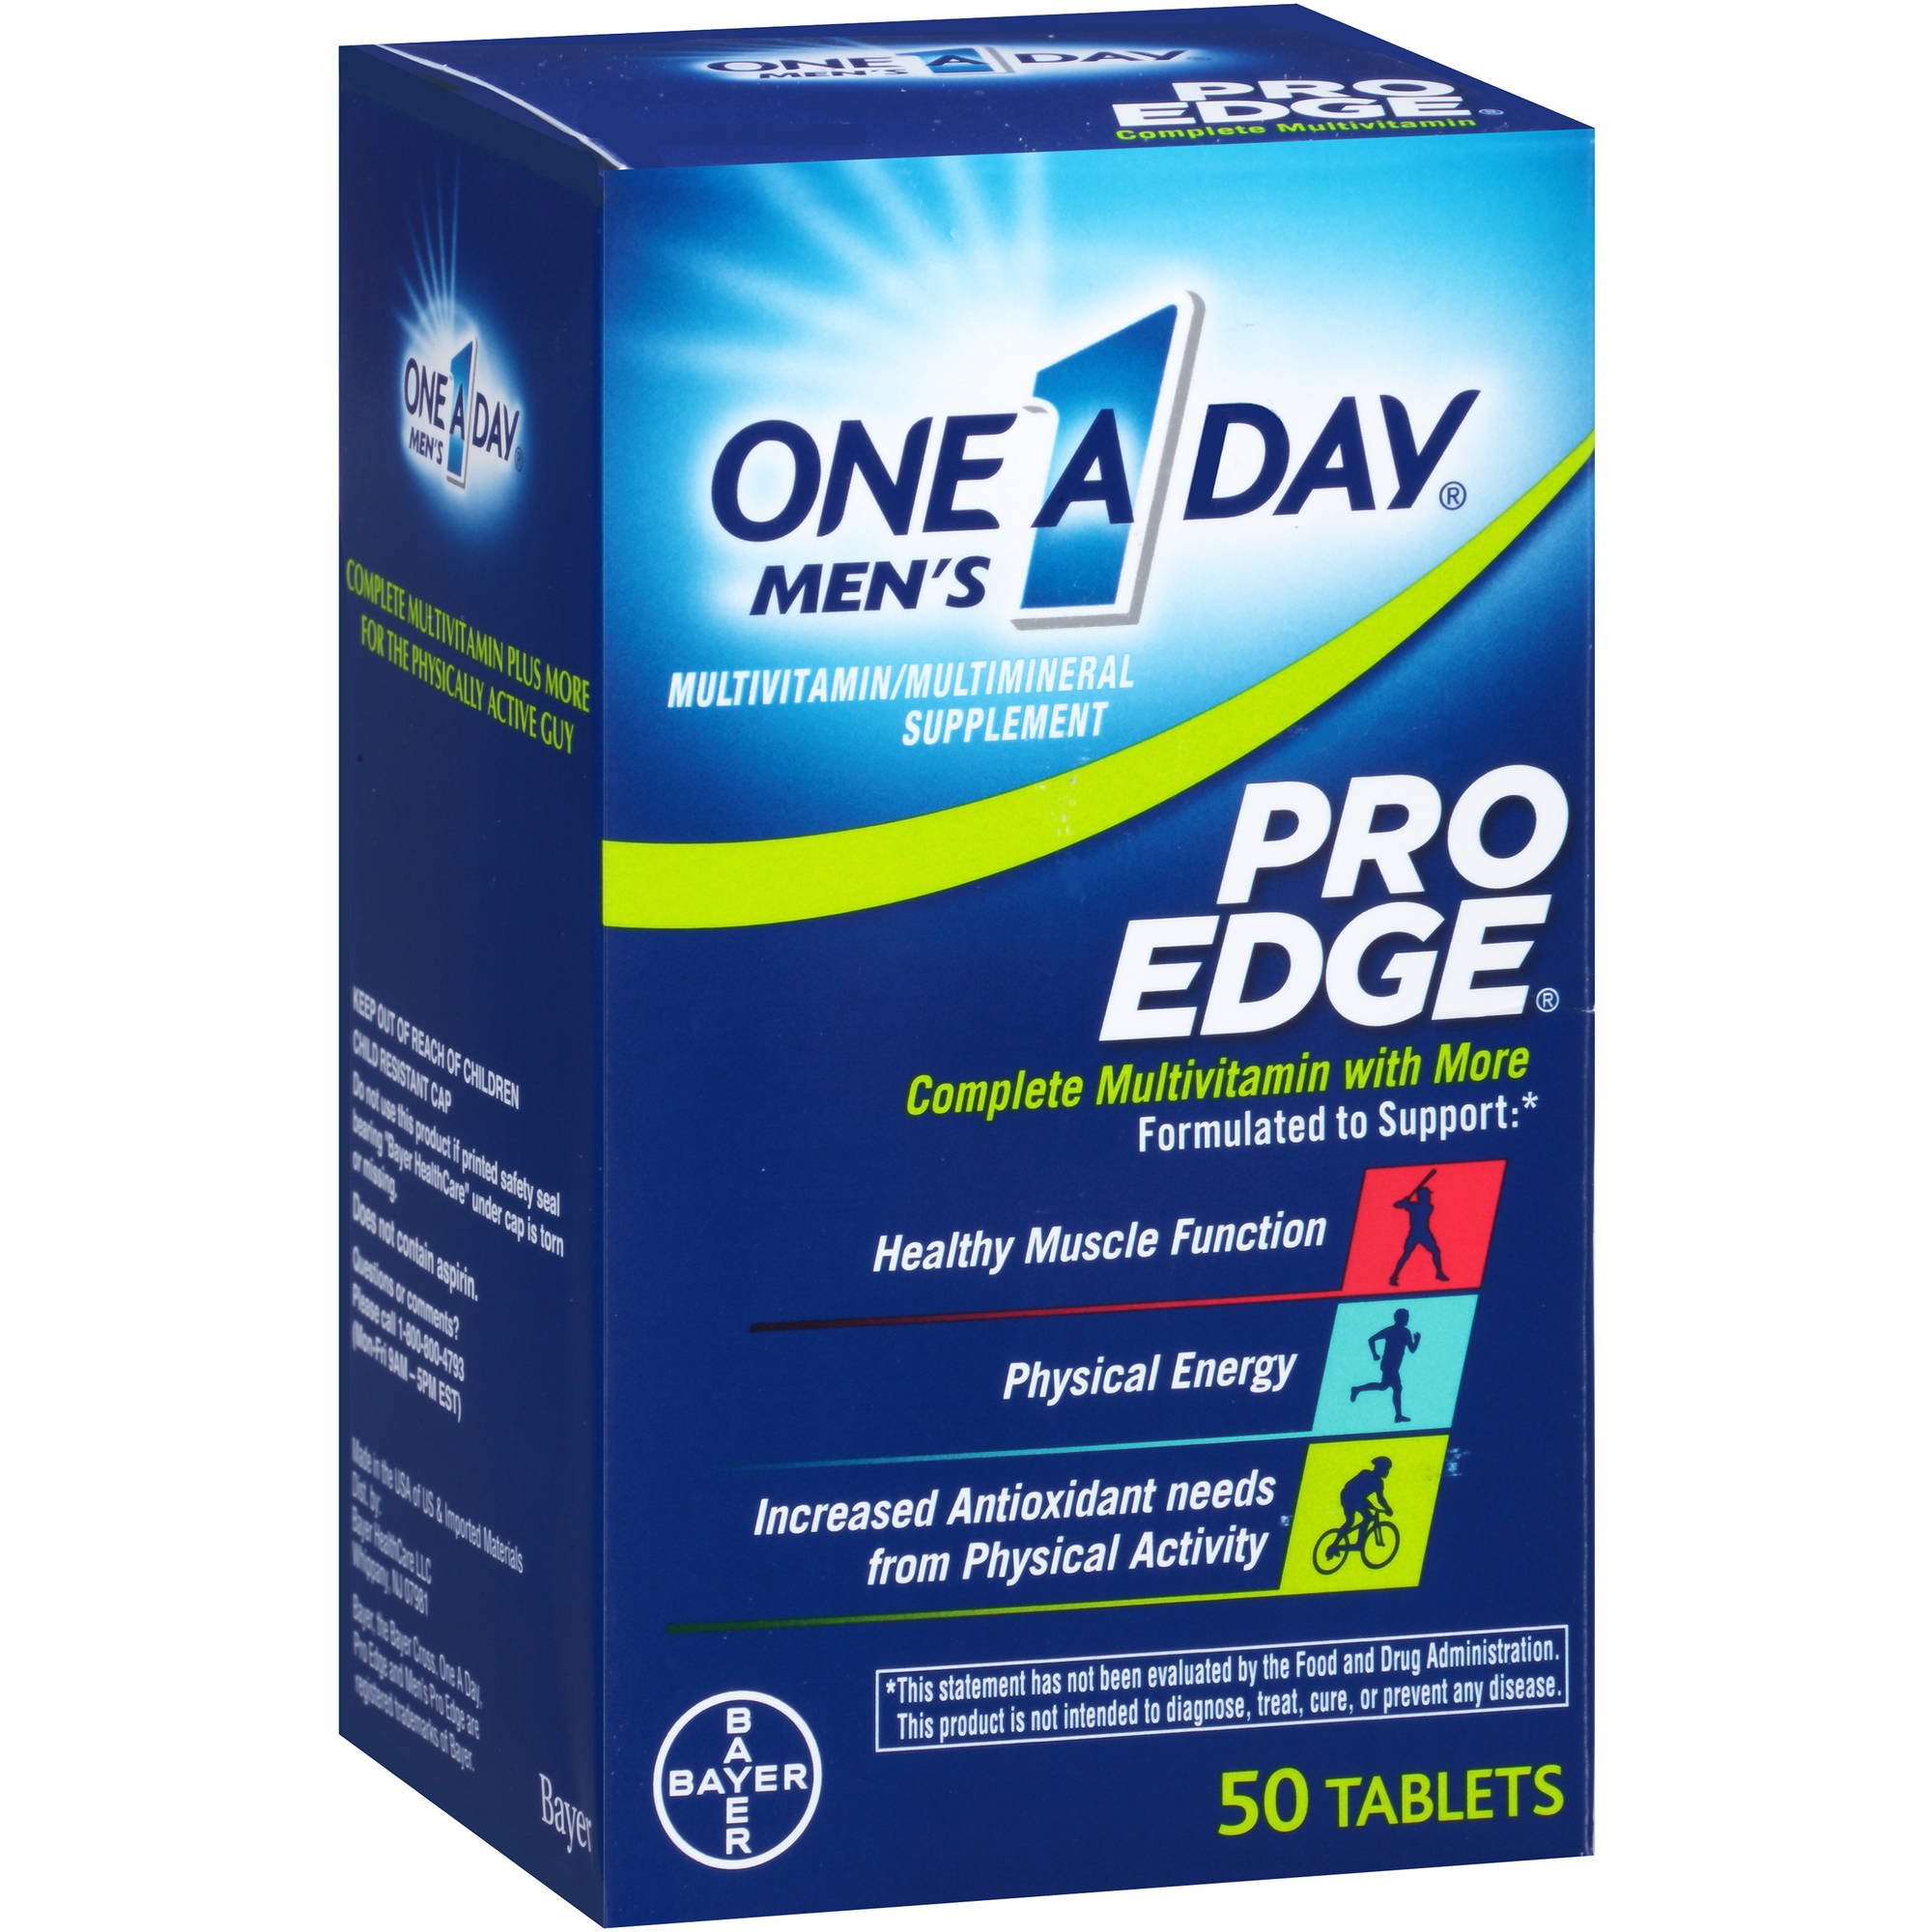 One A Day Men's Pro Edge Multivitamin/Multimineral Supplement, 50 count